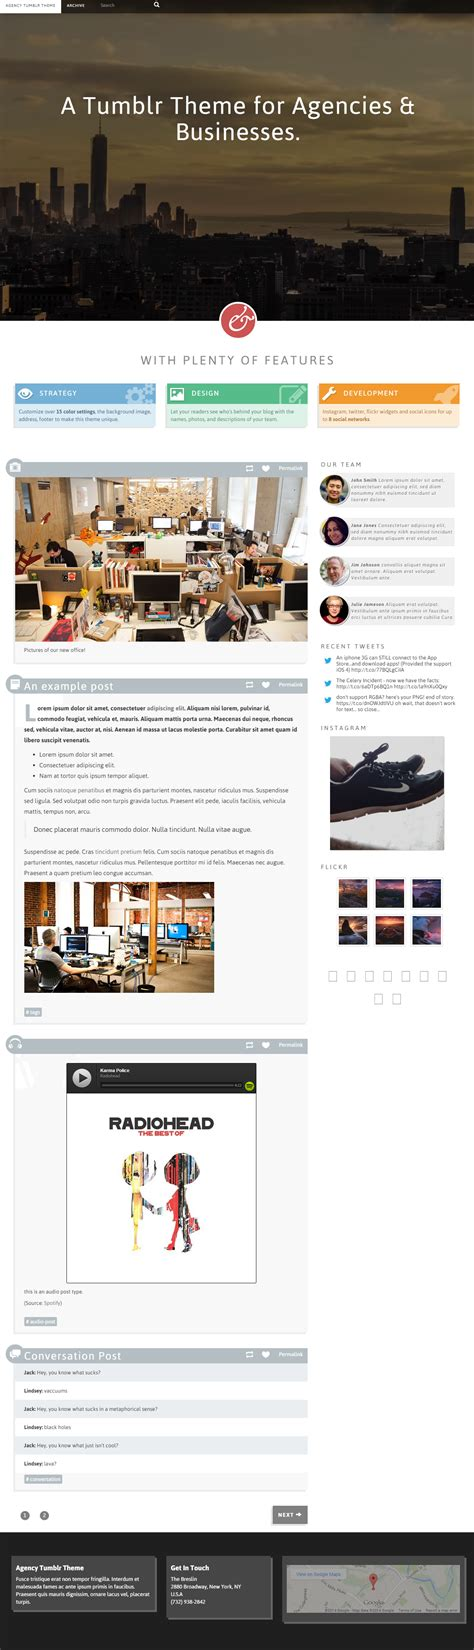 themes tumblr responsive best responsive tumblr agency themes in 2014 responsive